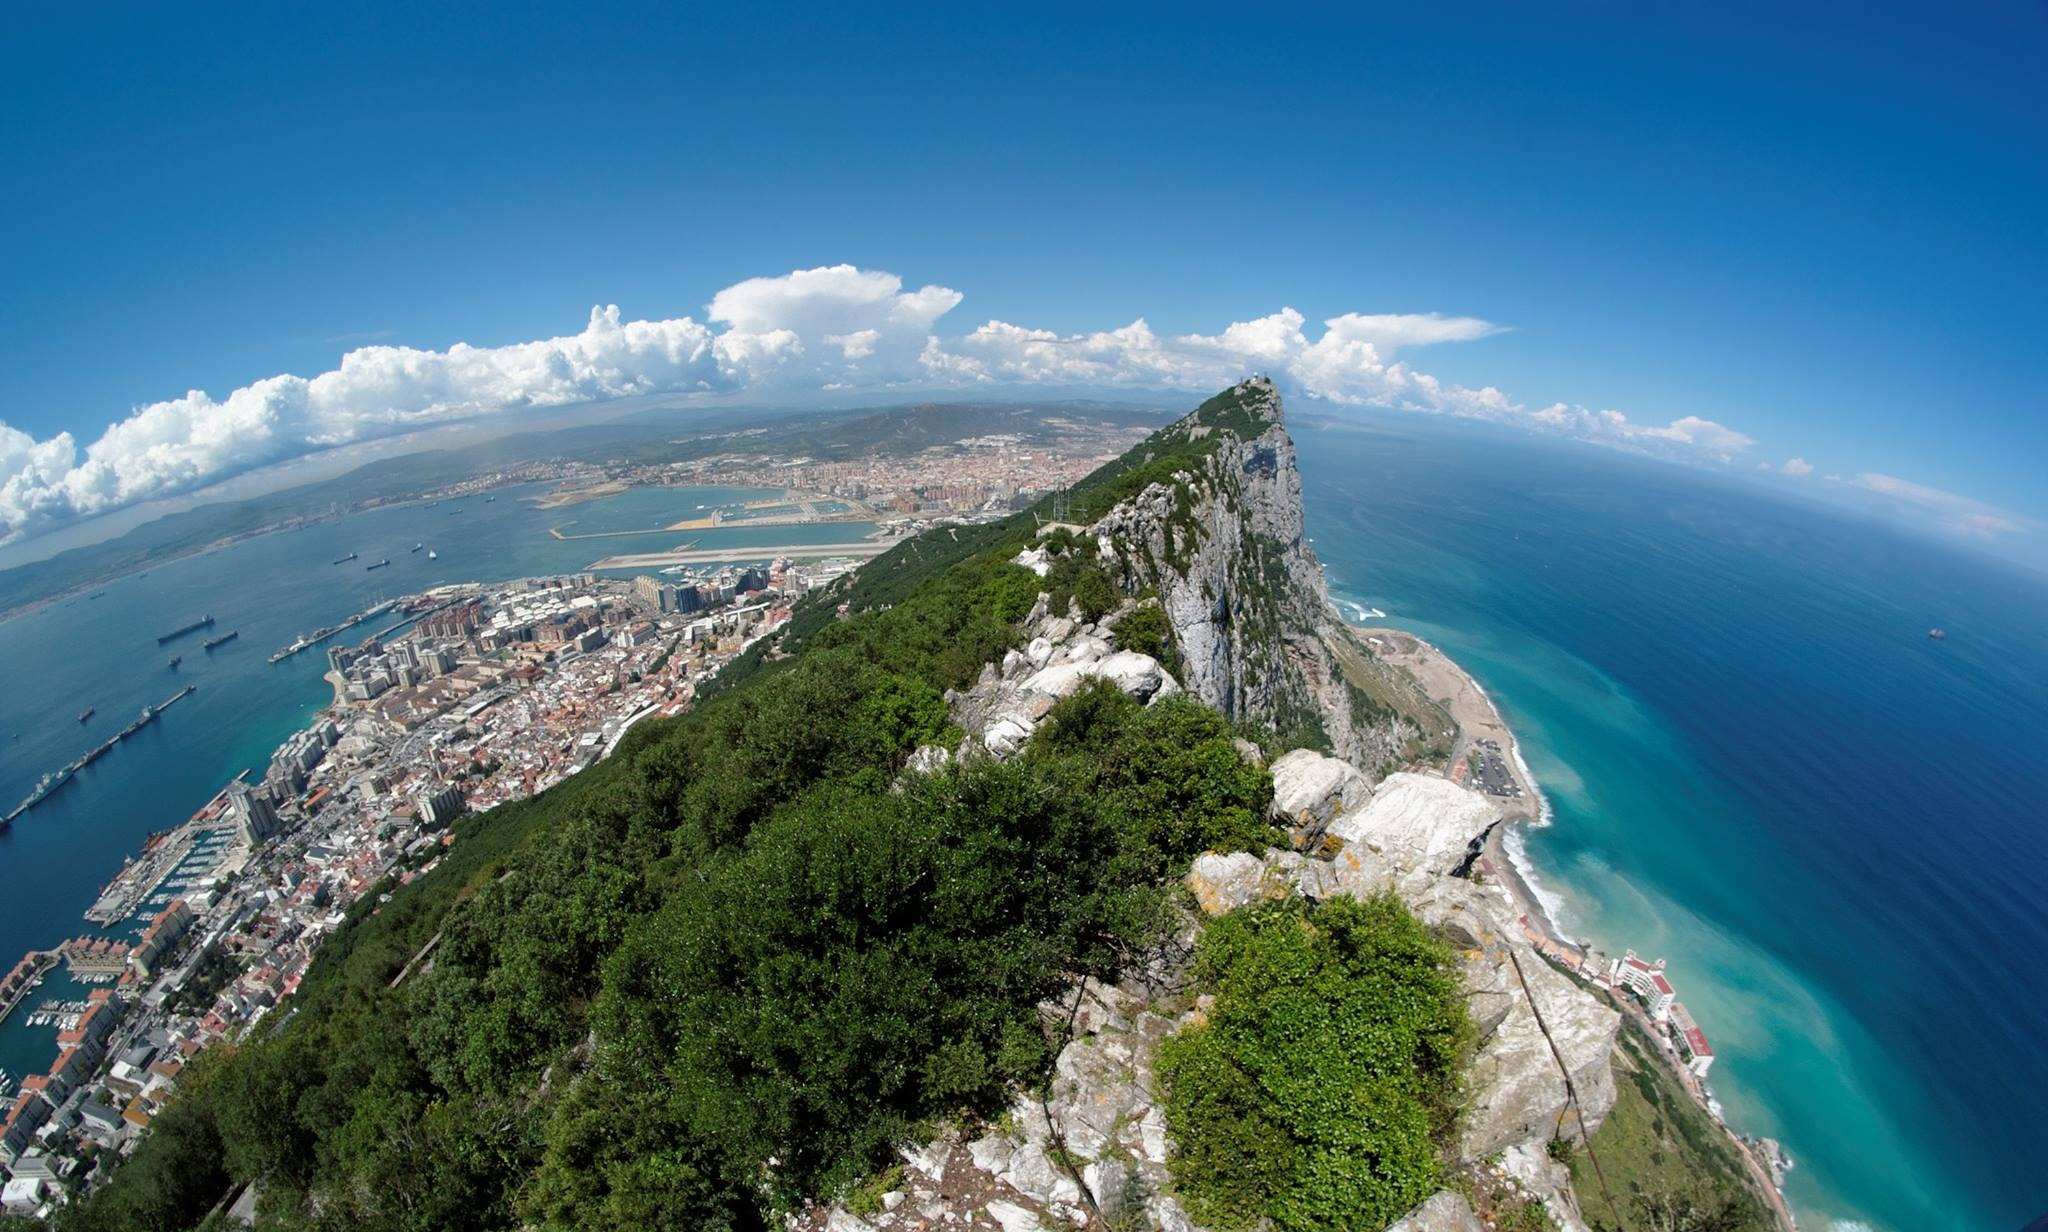 Gibraltar from above - Image credit to Gibraltar Tourism Board